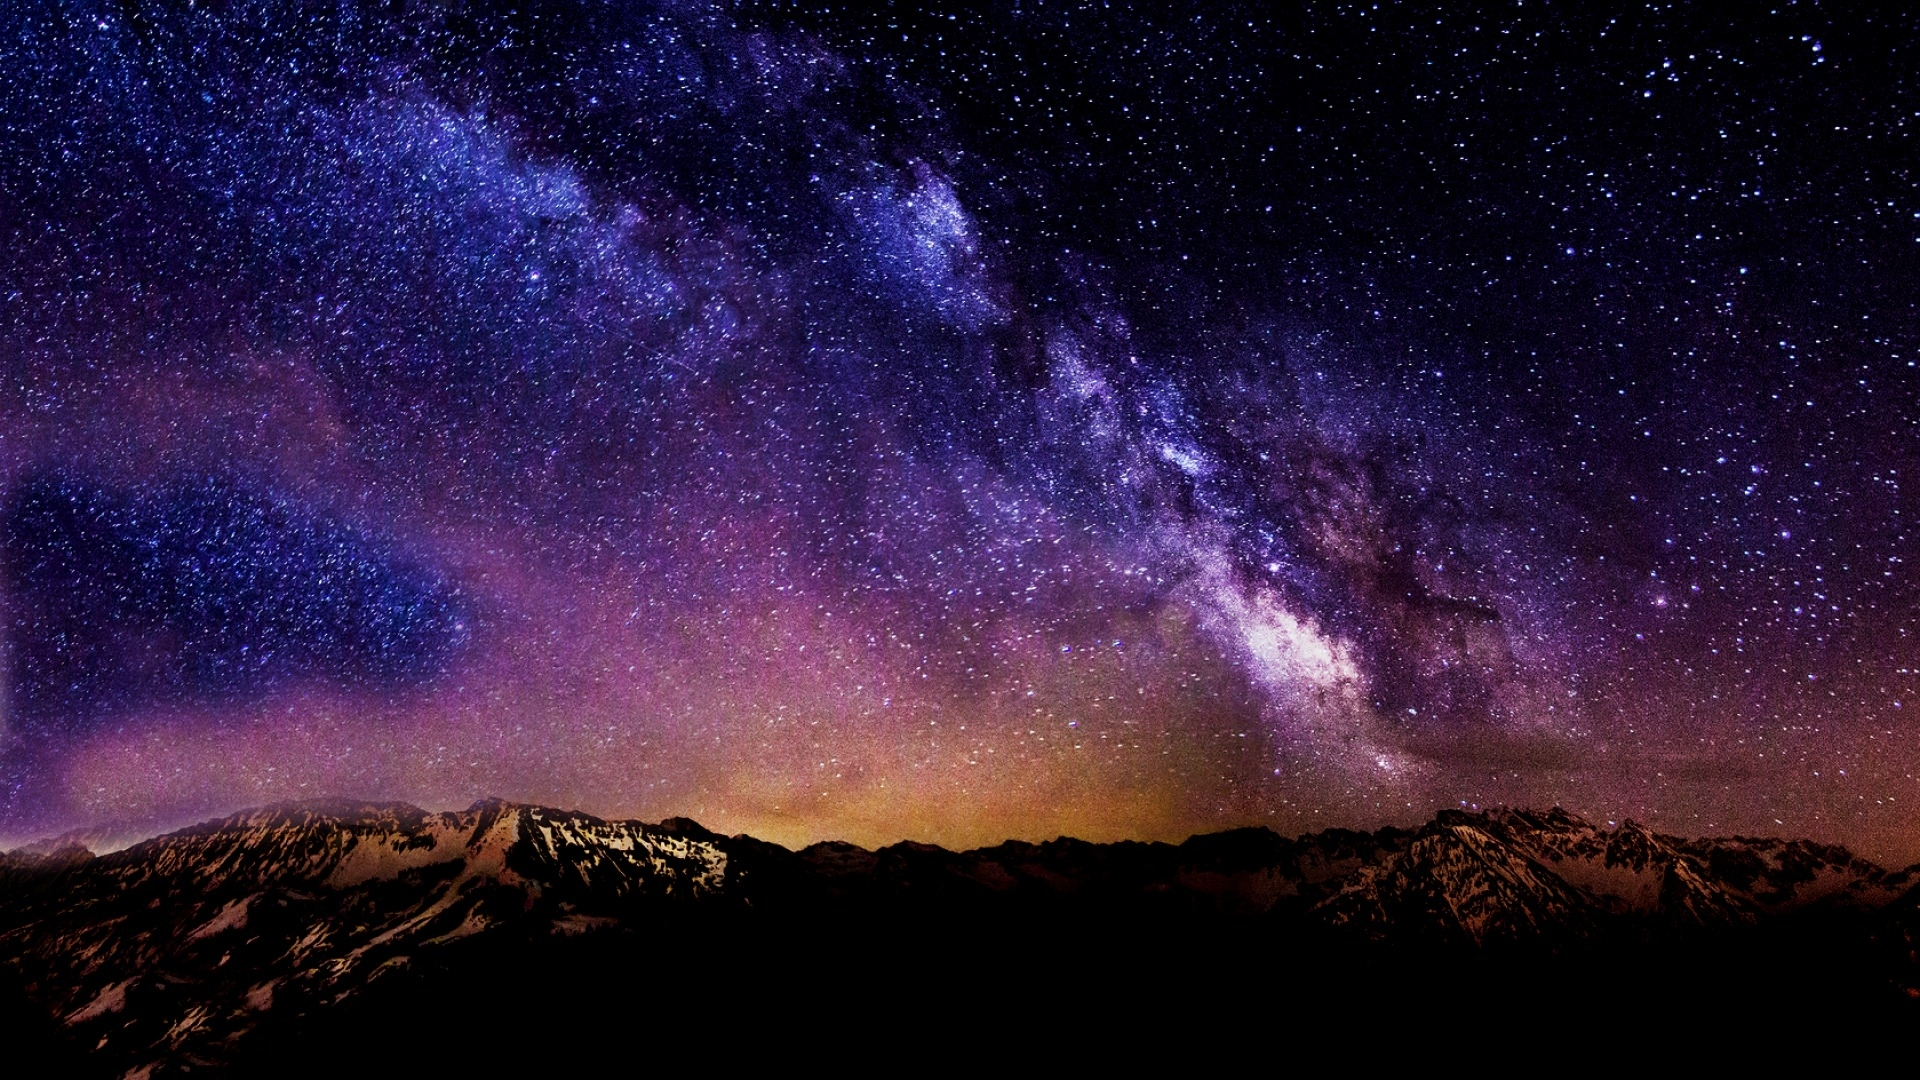 awesome starry night sky wallpaper high quality desktop hd